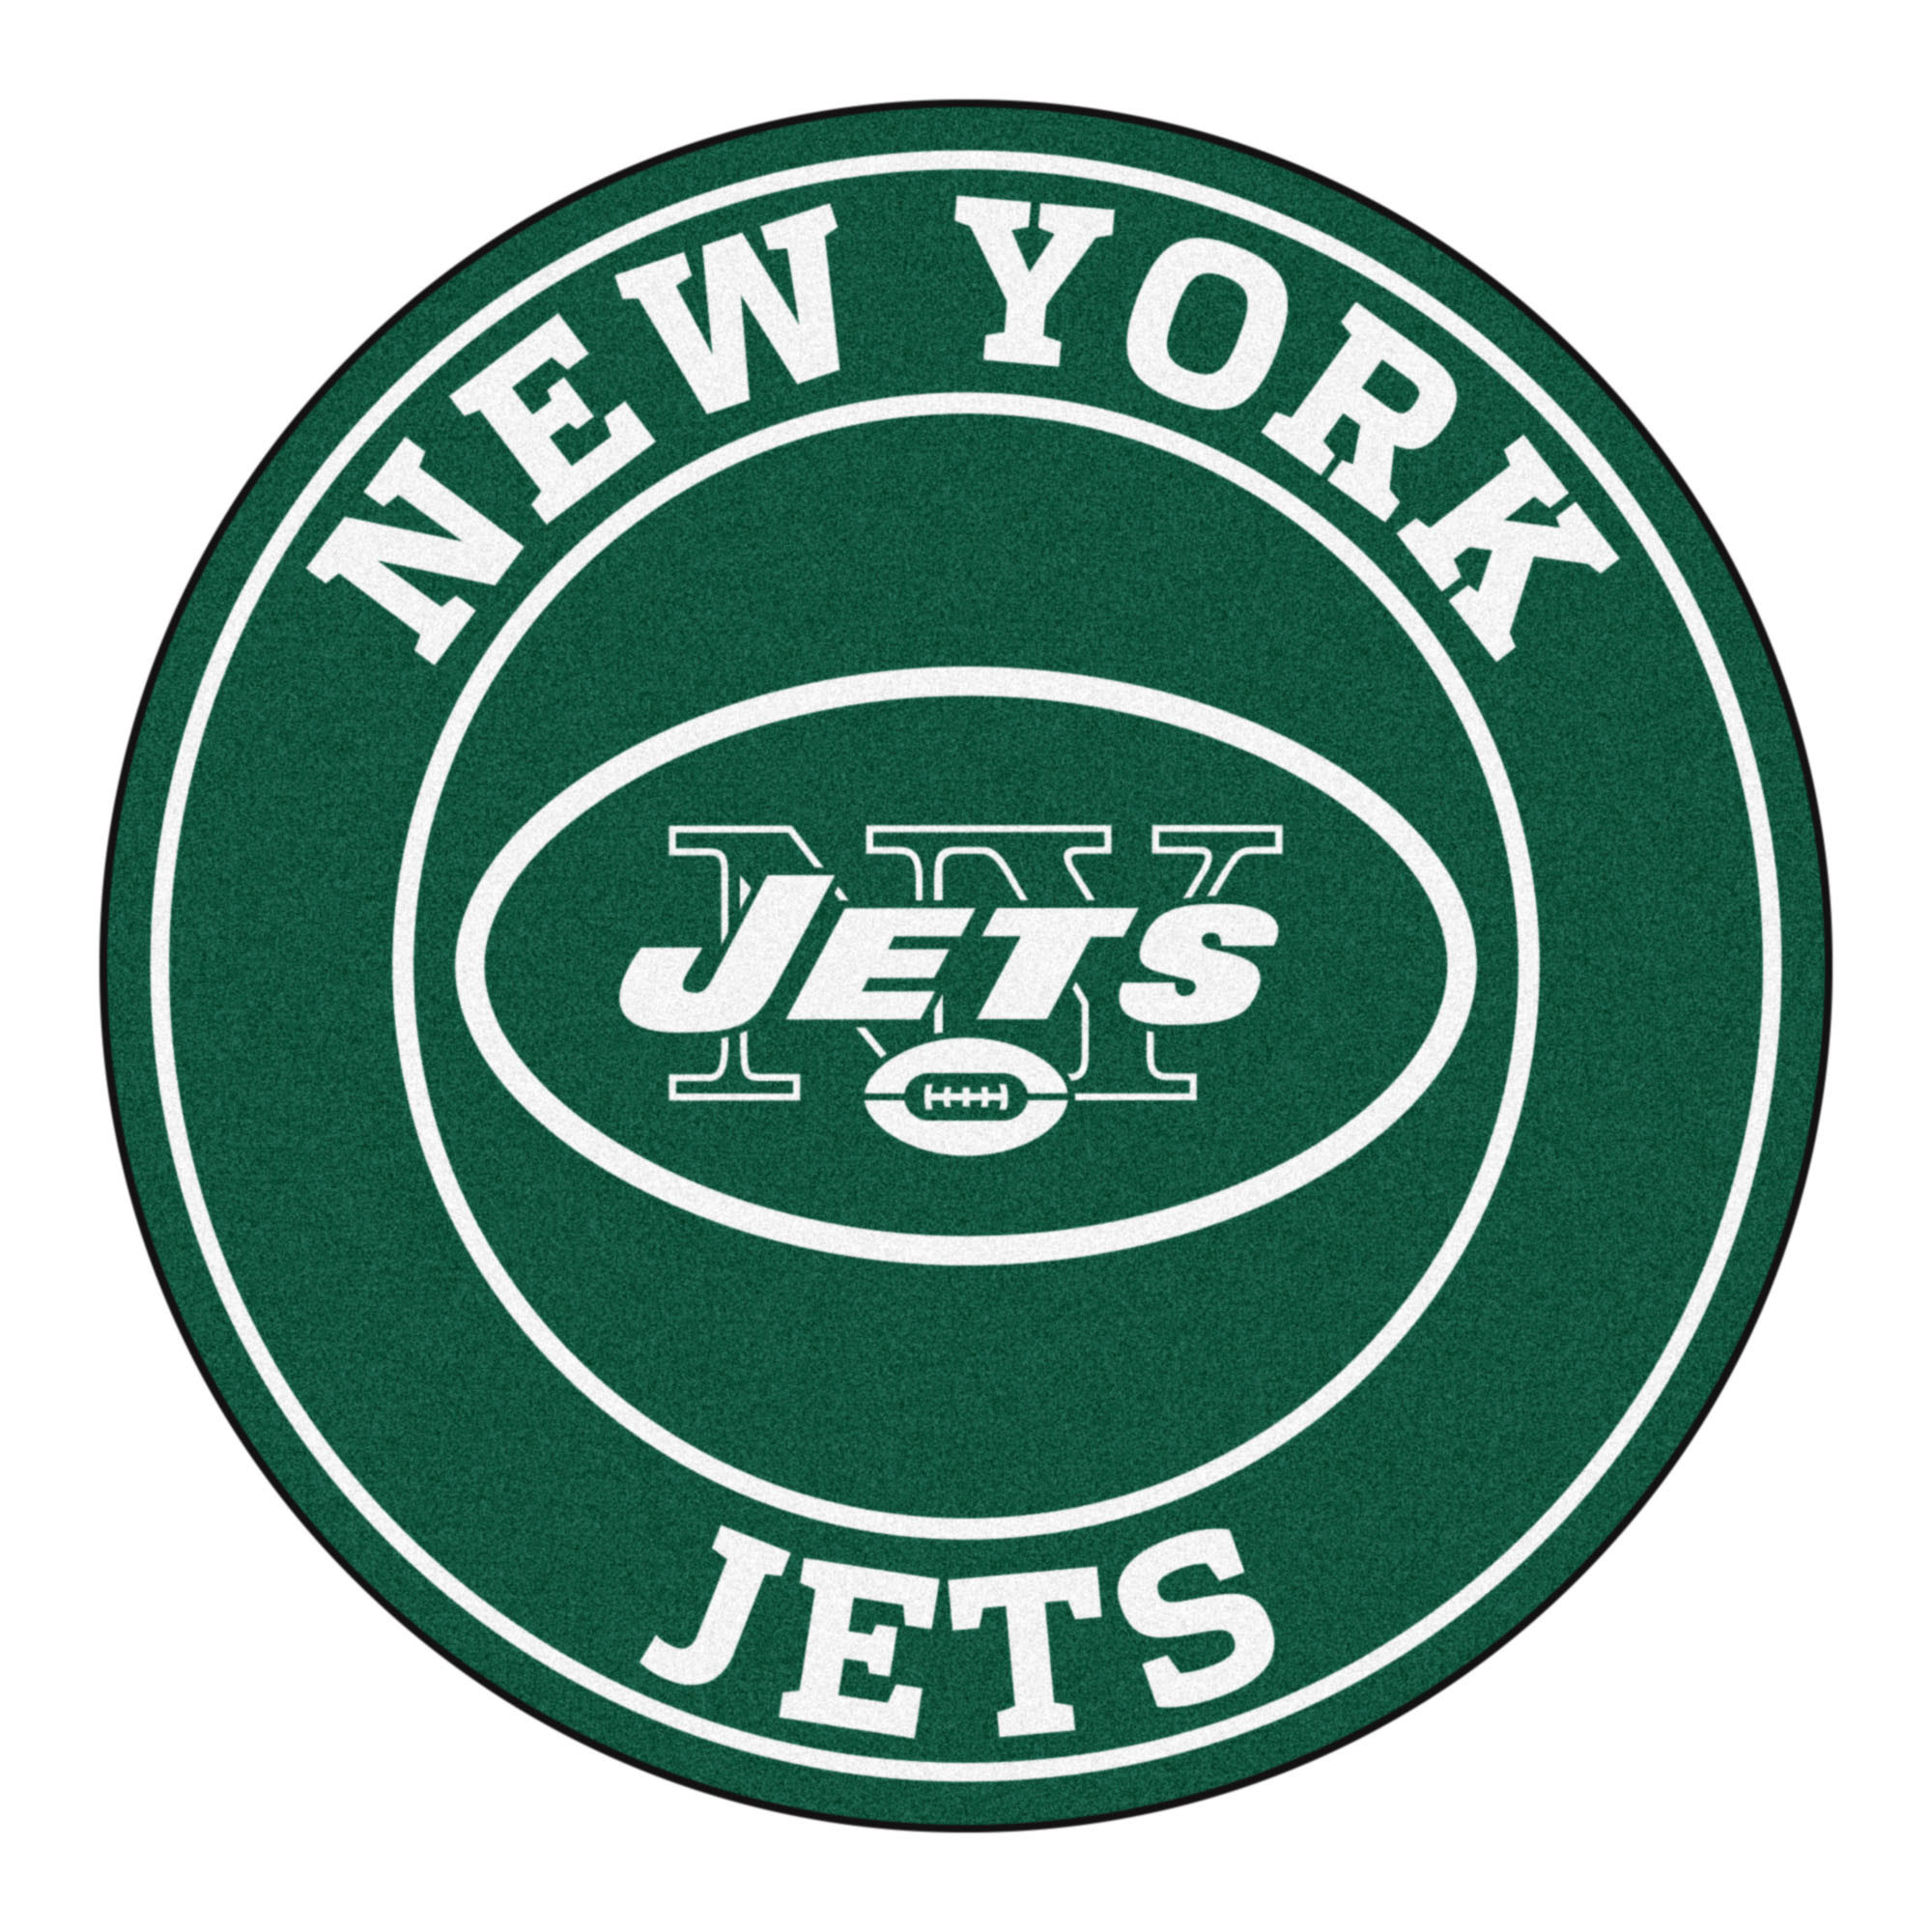 New York Jets Wallpapers 71 Images